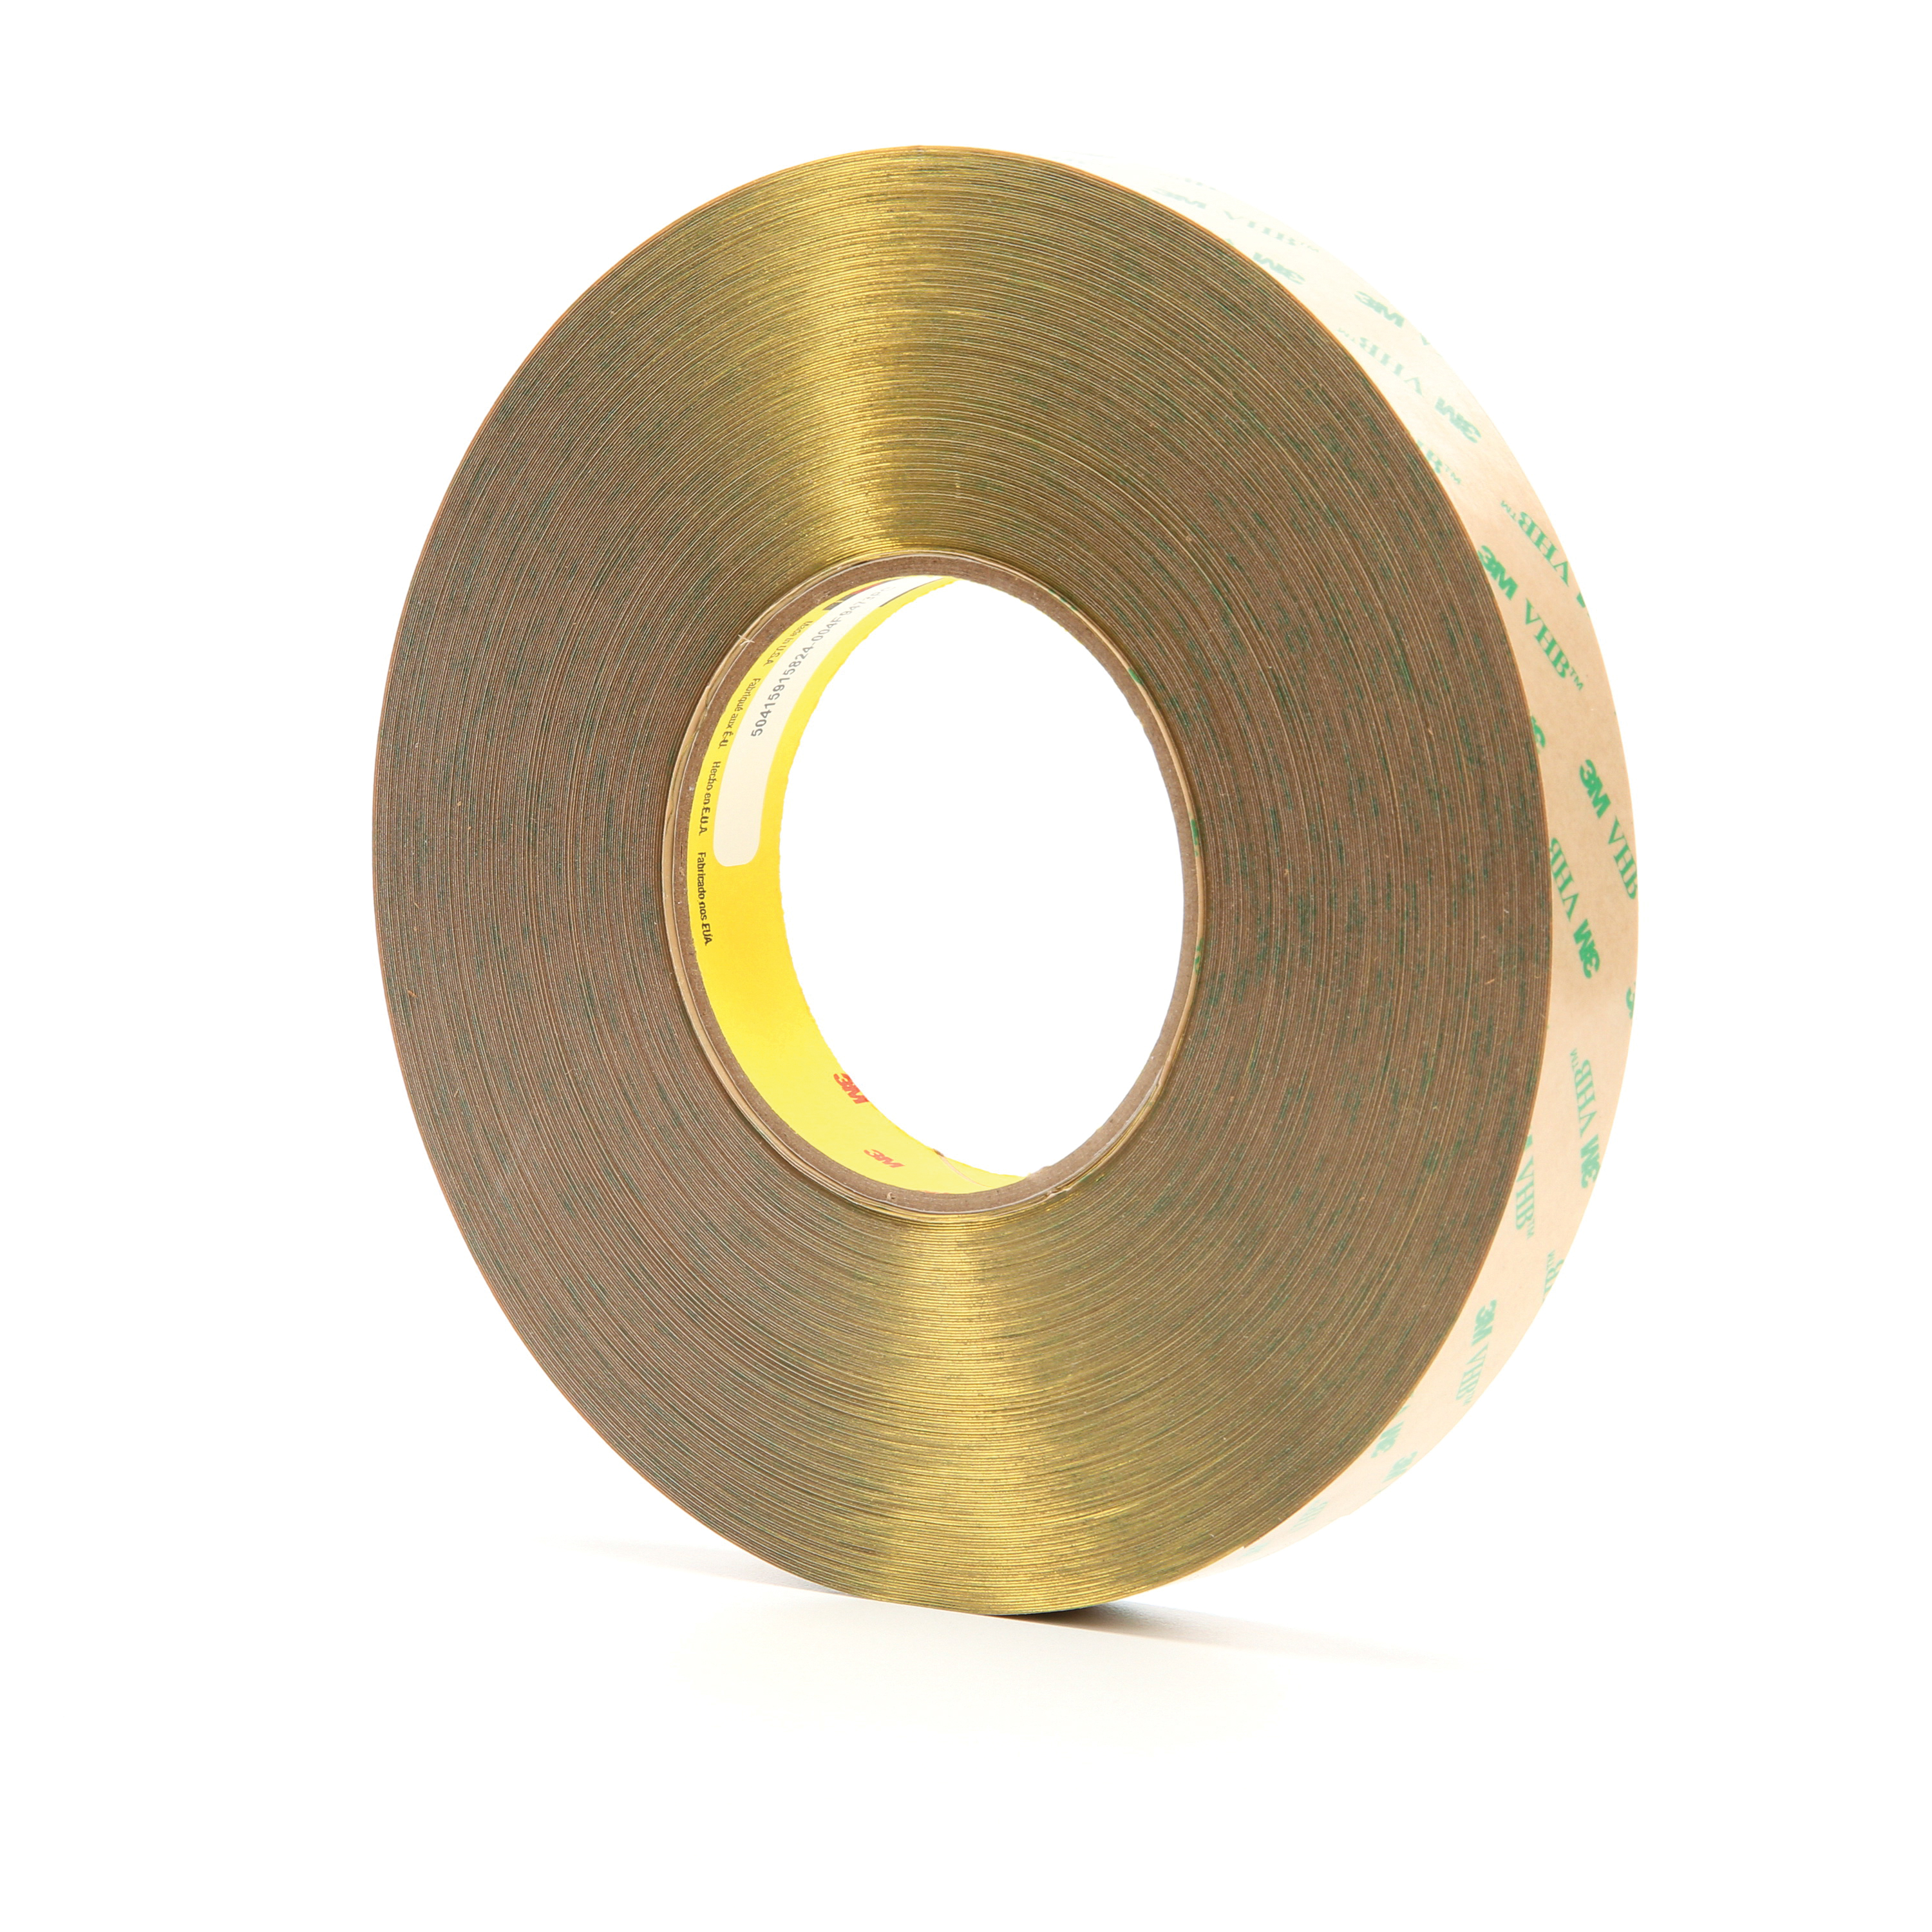 3M™ VHB™ 021200-13973 High Performance Low Tack Adhesive Transfer Tape, 60 yd L x 3/4 in W, 14.2 mil THK, 10 mil 100MP Acrylic Adhesive, Clear